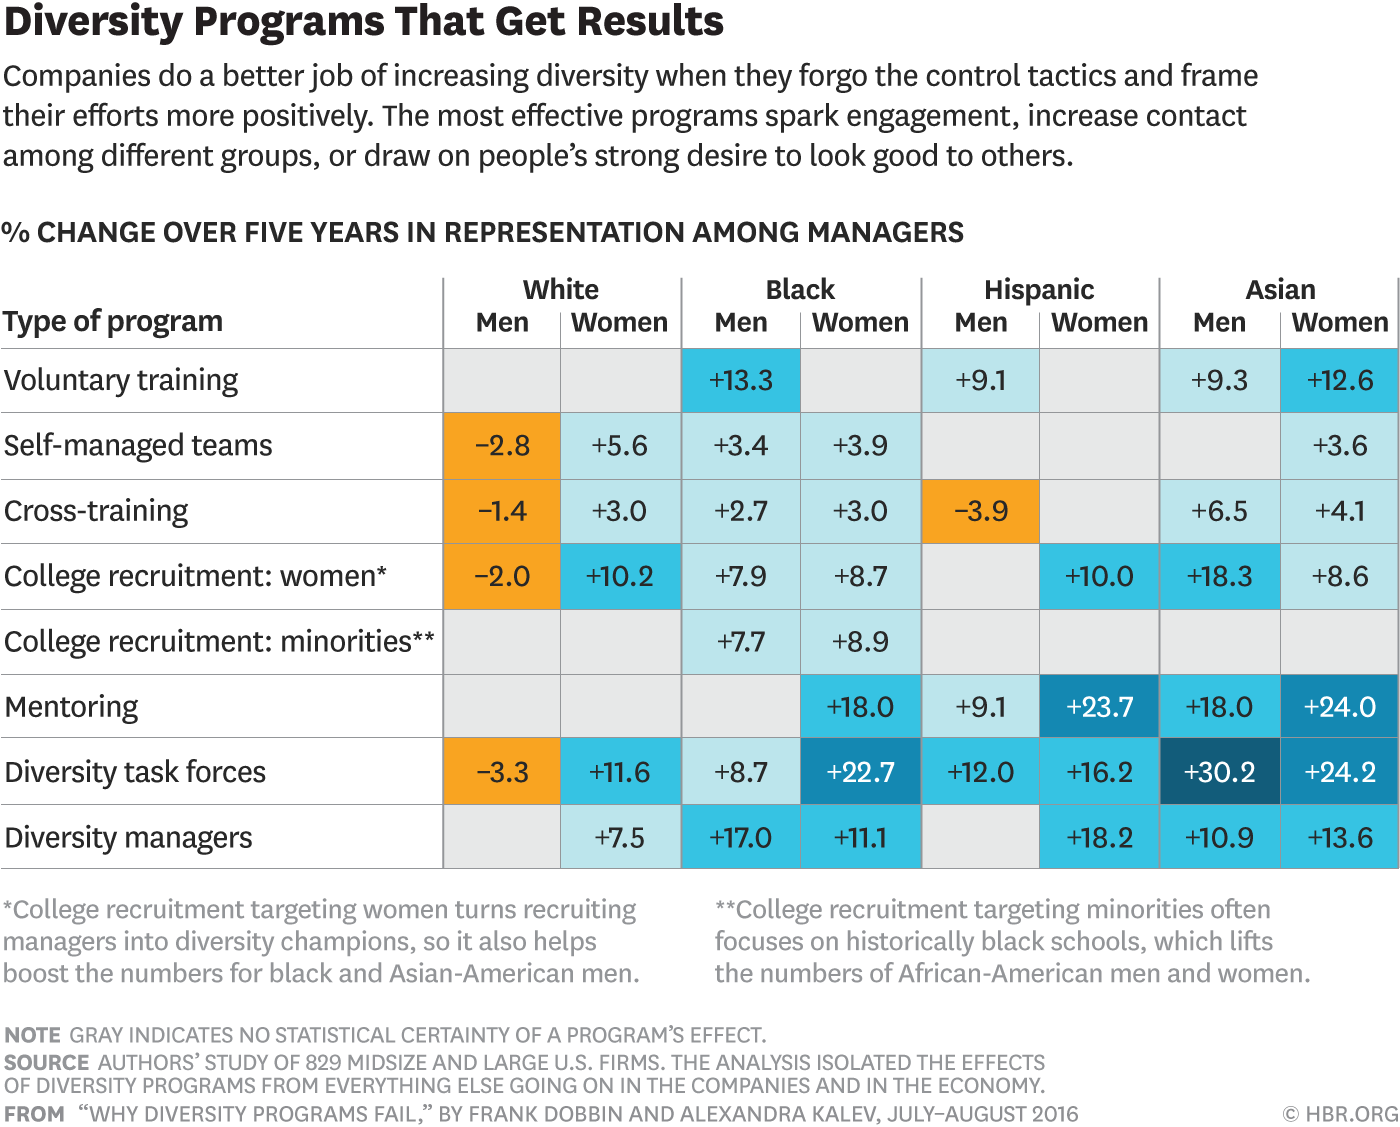 Diversity Program that Get Results: Companies do a better job of increasing diversity when they forgo the control tactics and frame their efforts more positively. The most effective programs spark engagement, increase contact among different groups, or draw on people's strong desire to look good to others.